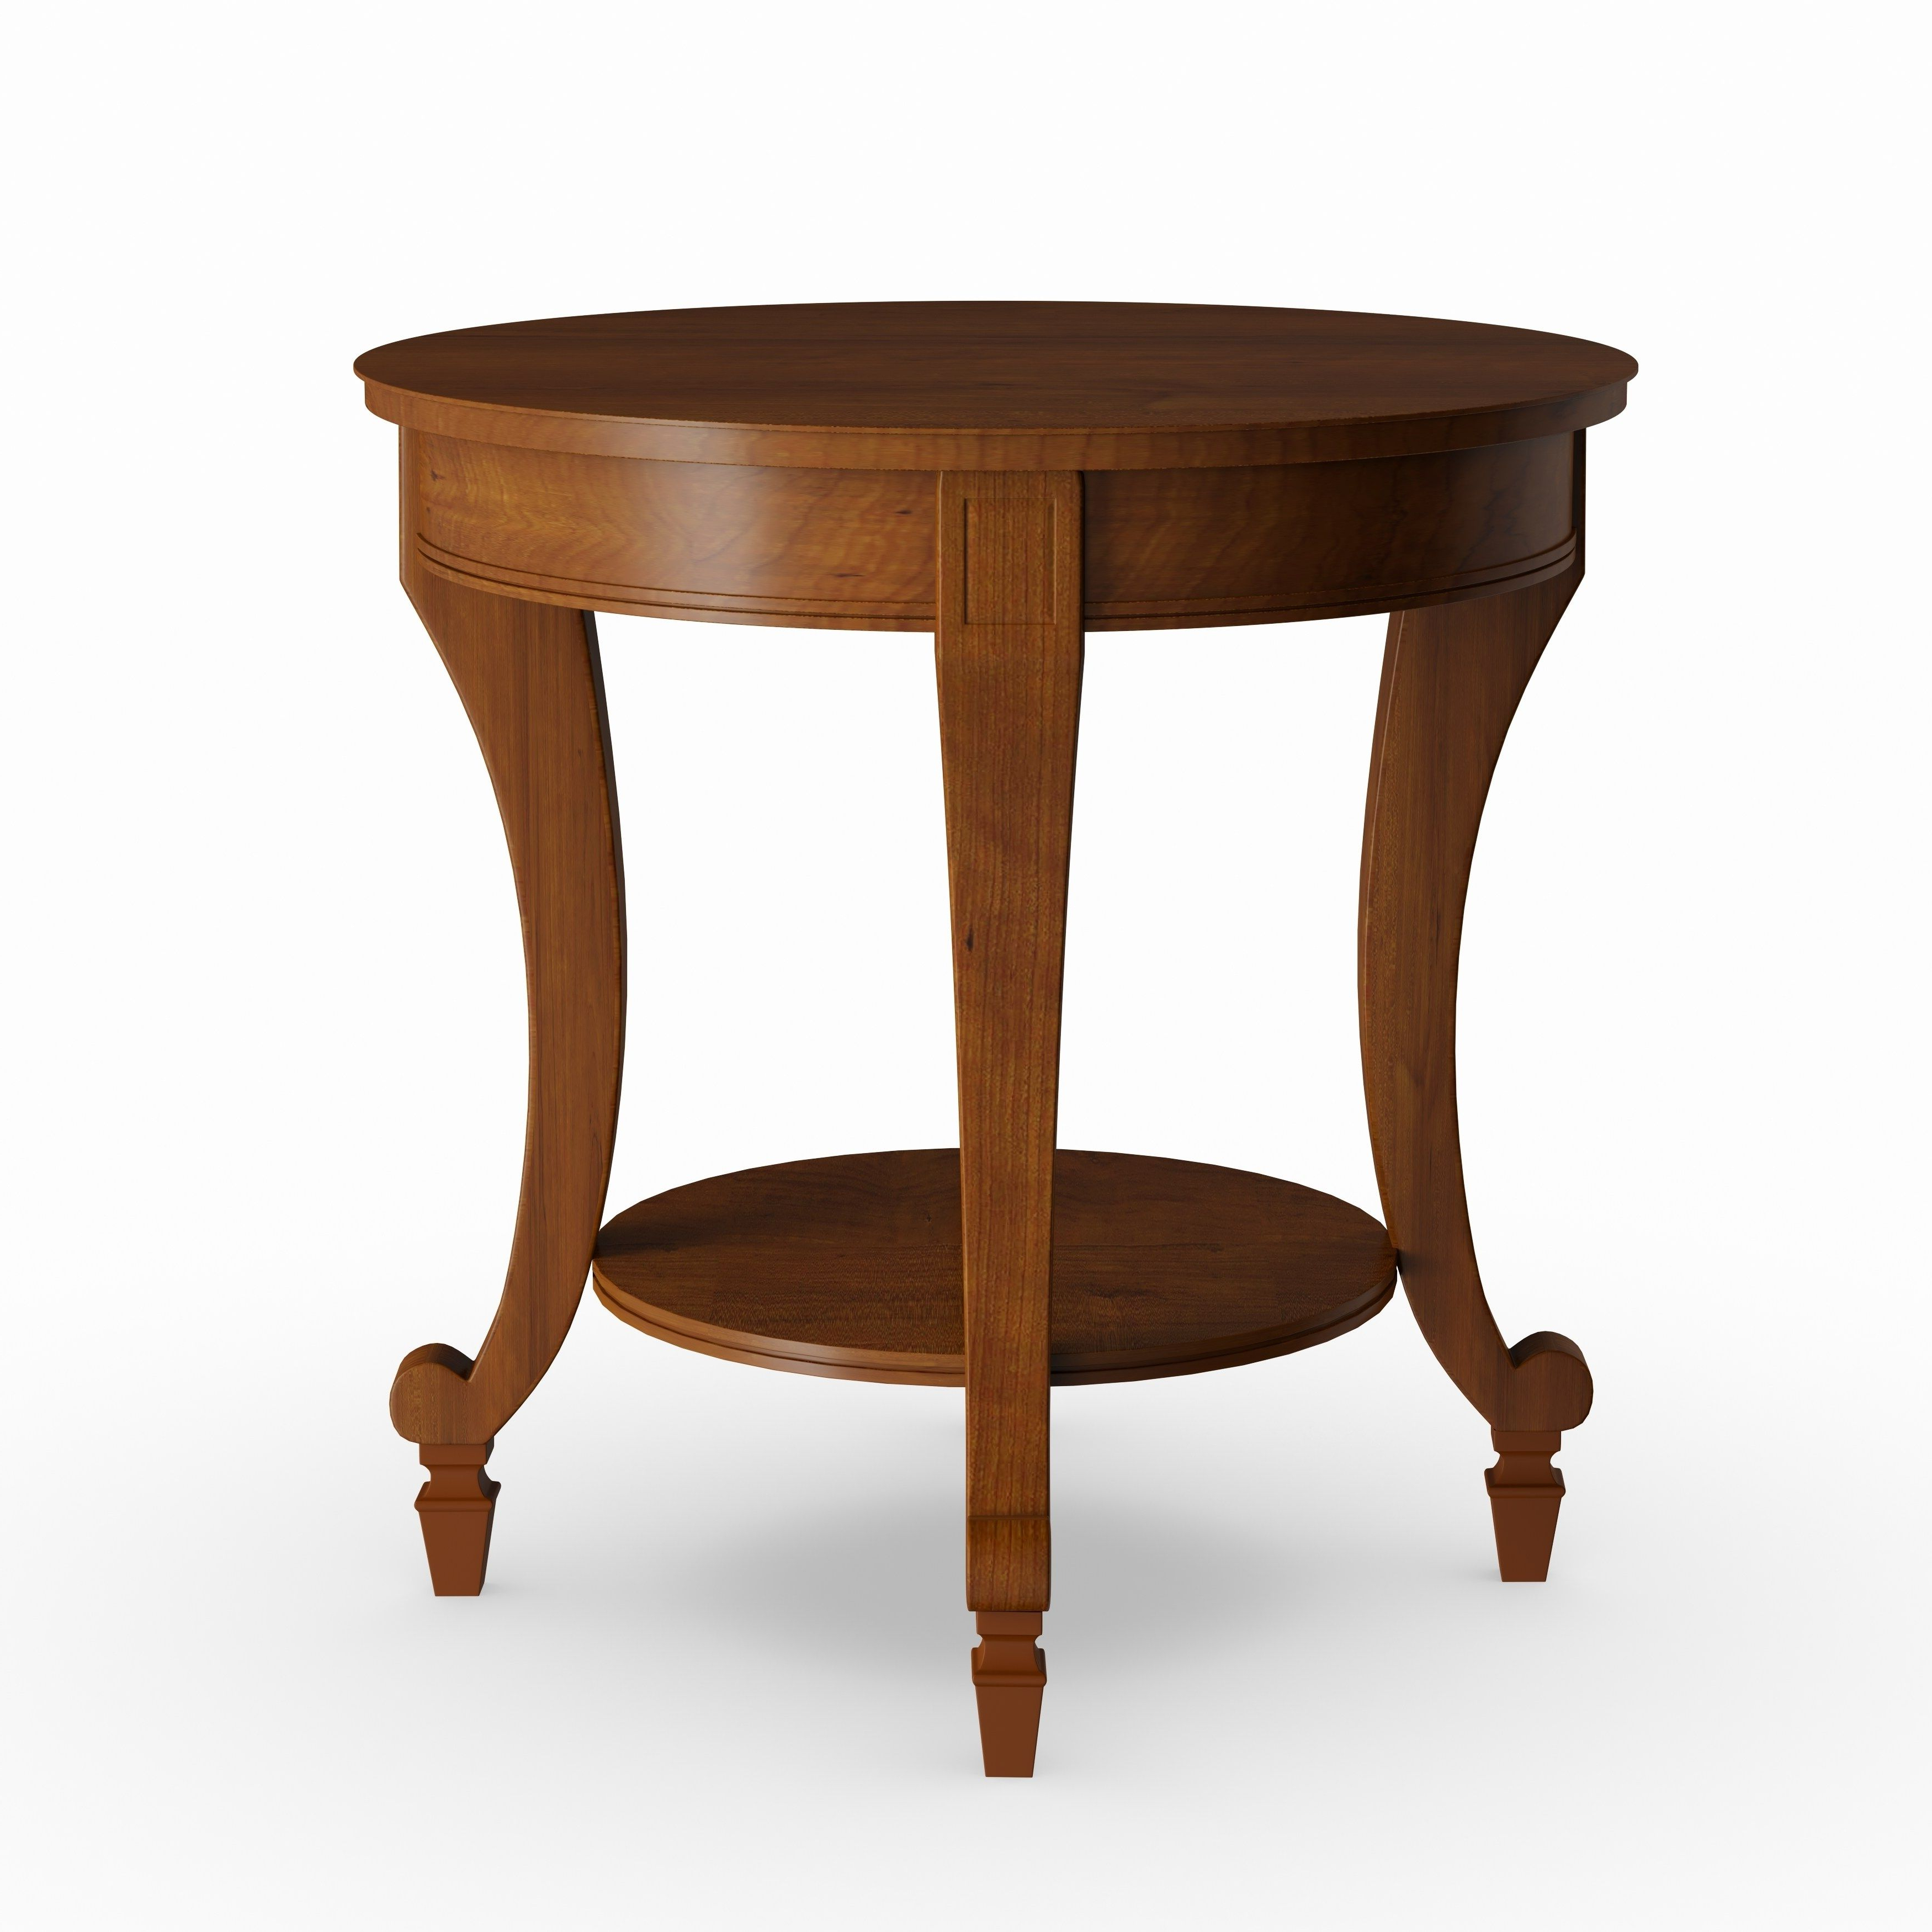 Gracewood Hollow Dones Traditional Cinnamon Round End Table Within Preferred Gracewood Hollow Dones Traditional Cinnamon Round End Tables (View 3 of 20)